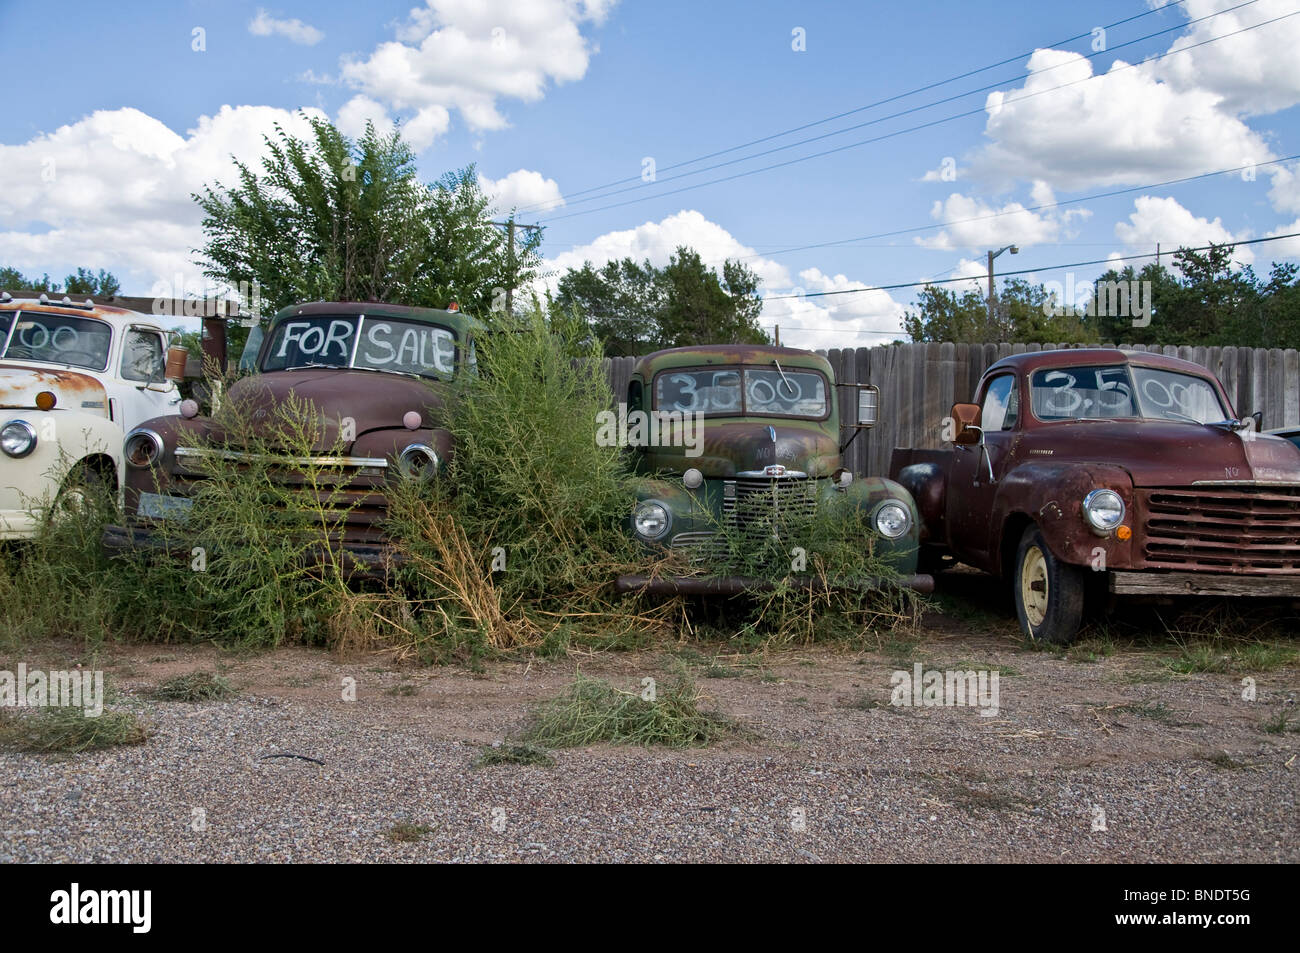 Rusty cars for sale, Tijeras, Route 66, Albuquerque, New Mexico, USA ...